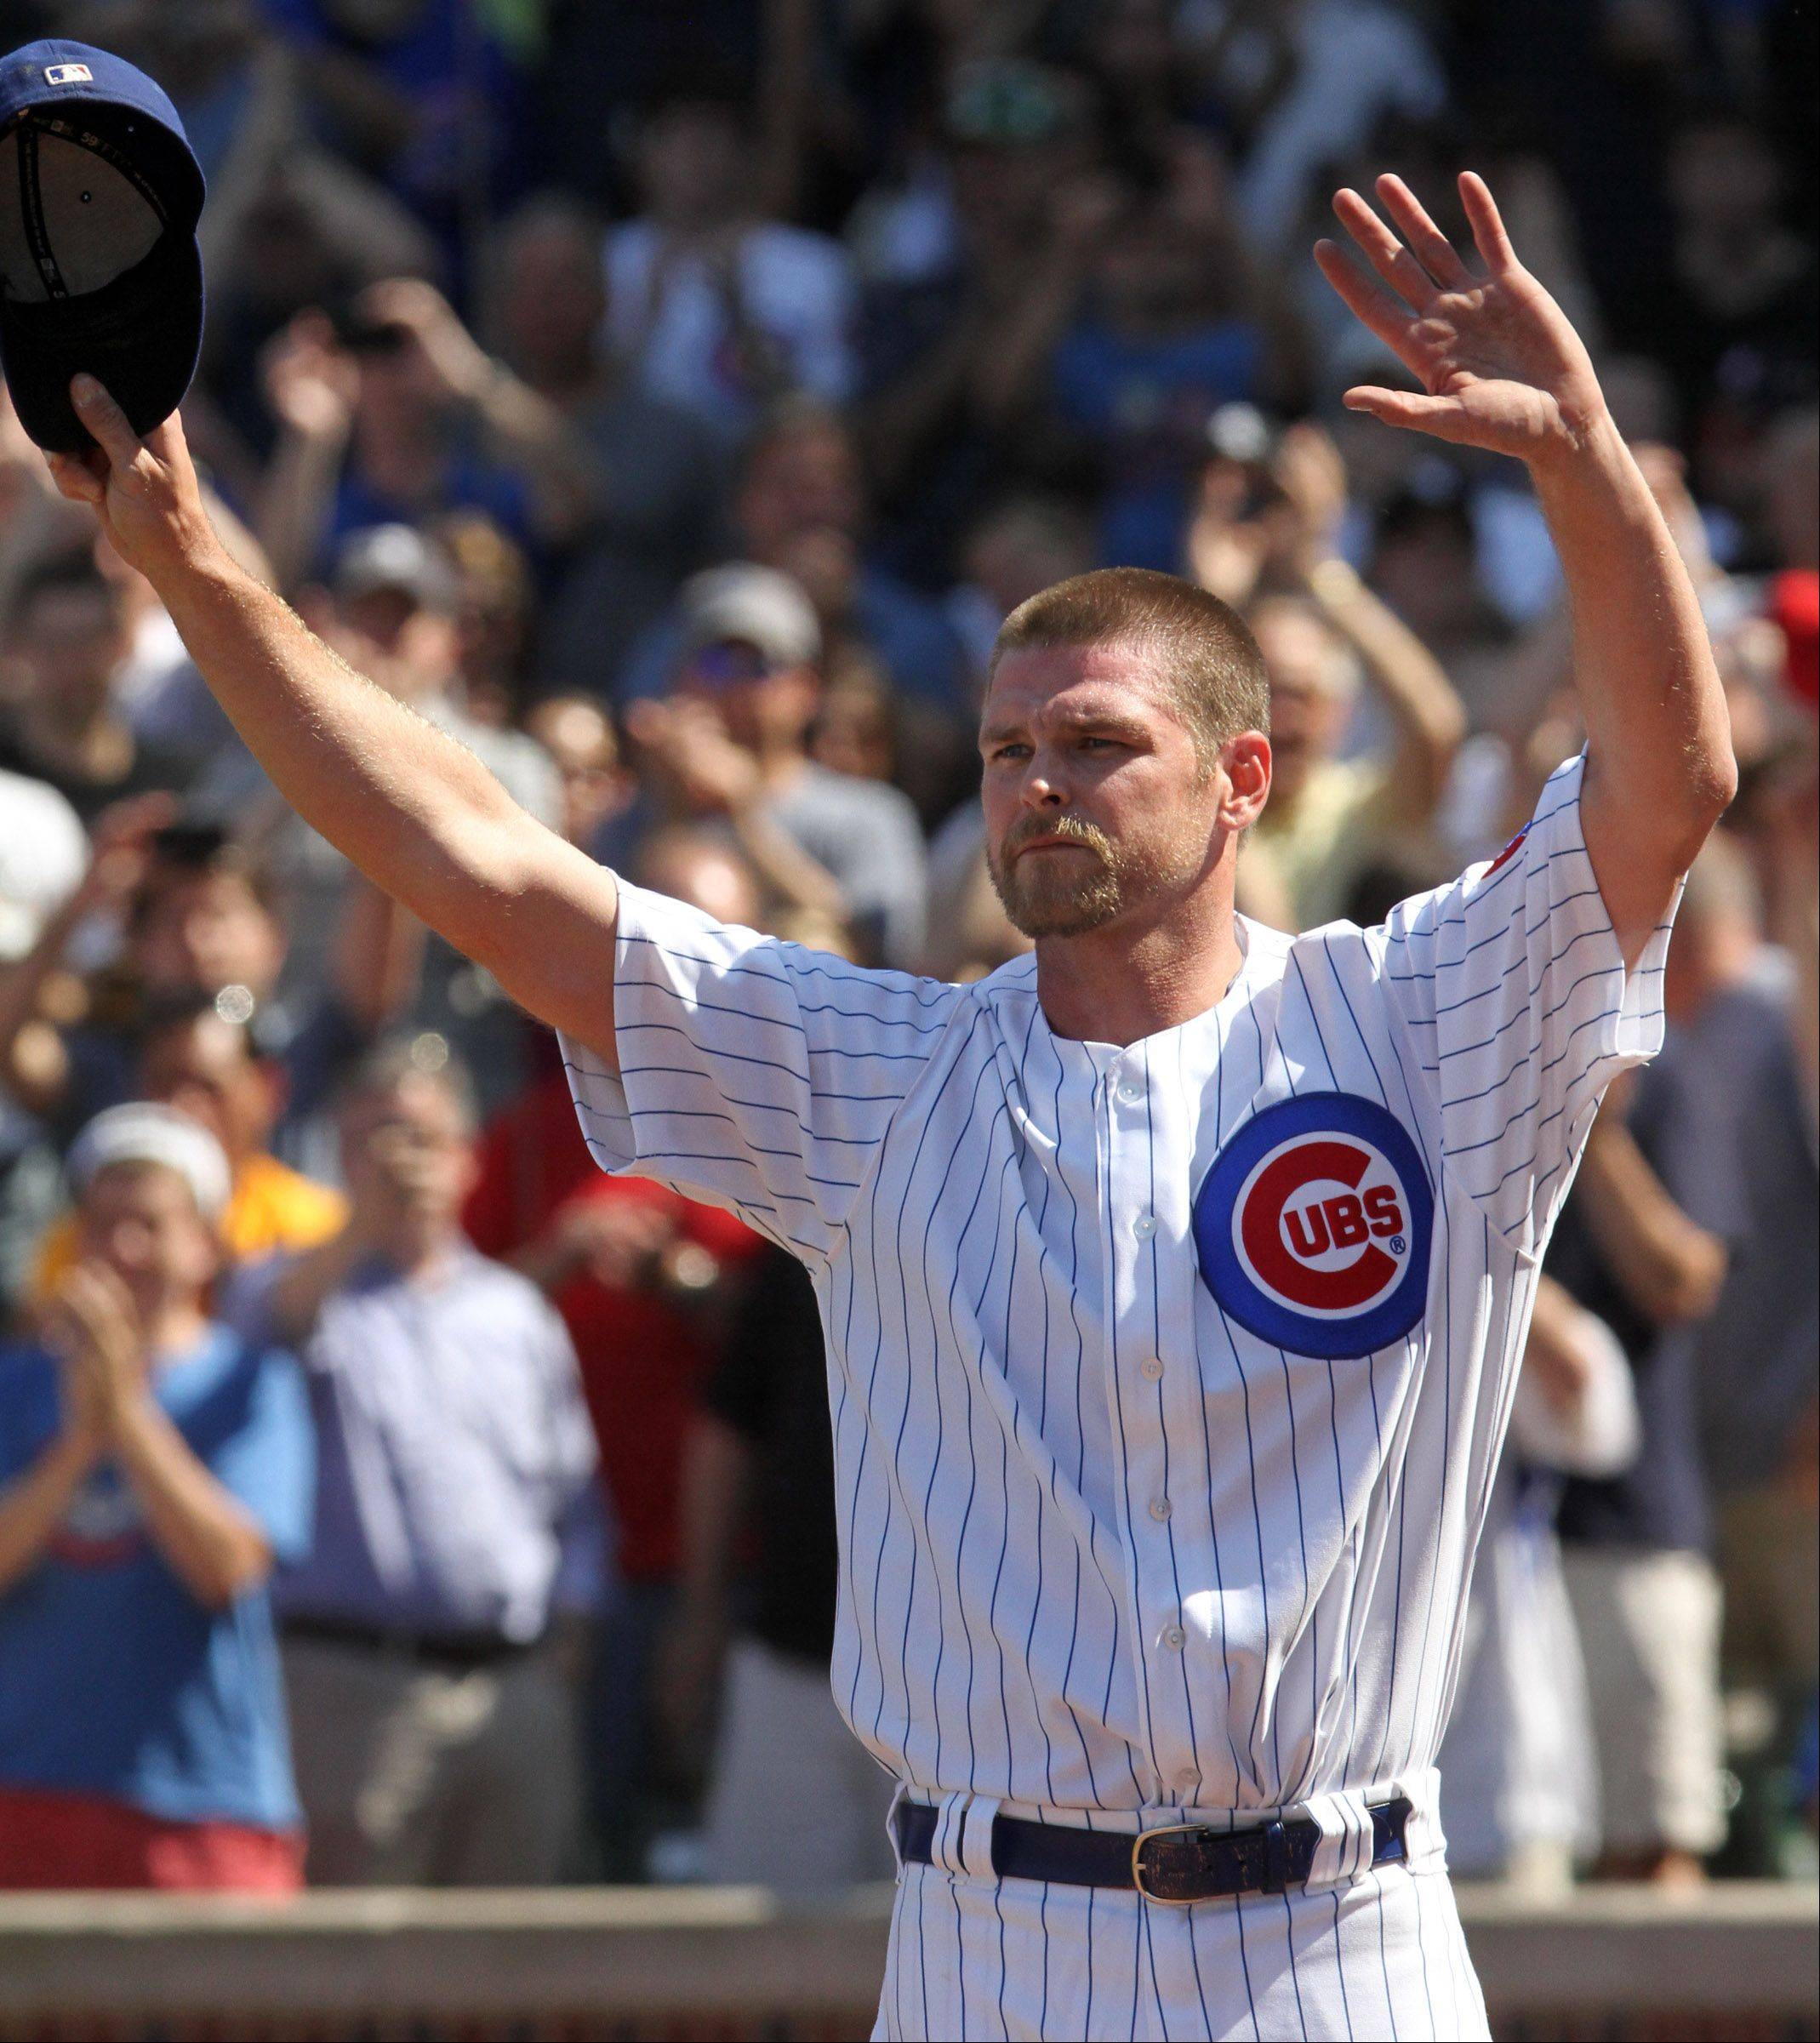 Former Cubs pitcher Kerry Wood, here getting a standing ovation in his last appearance at Wrigley Field on May 18, could be the favorite among contenders seeking Bob Brenly's broadcast job with the Cubs.